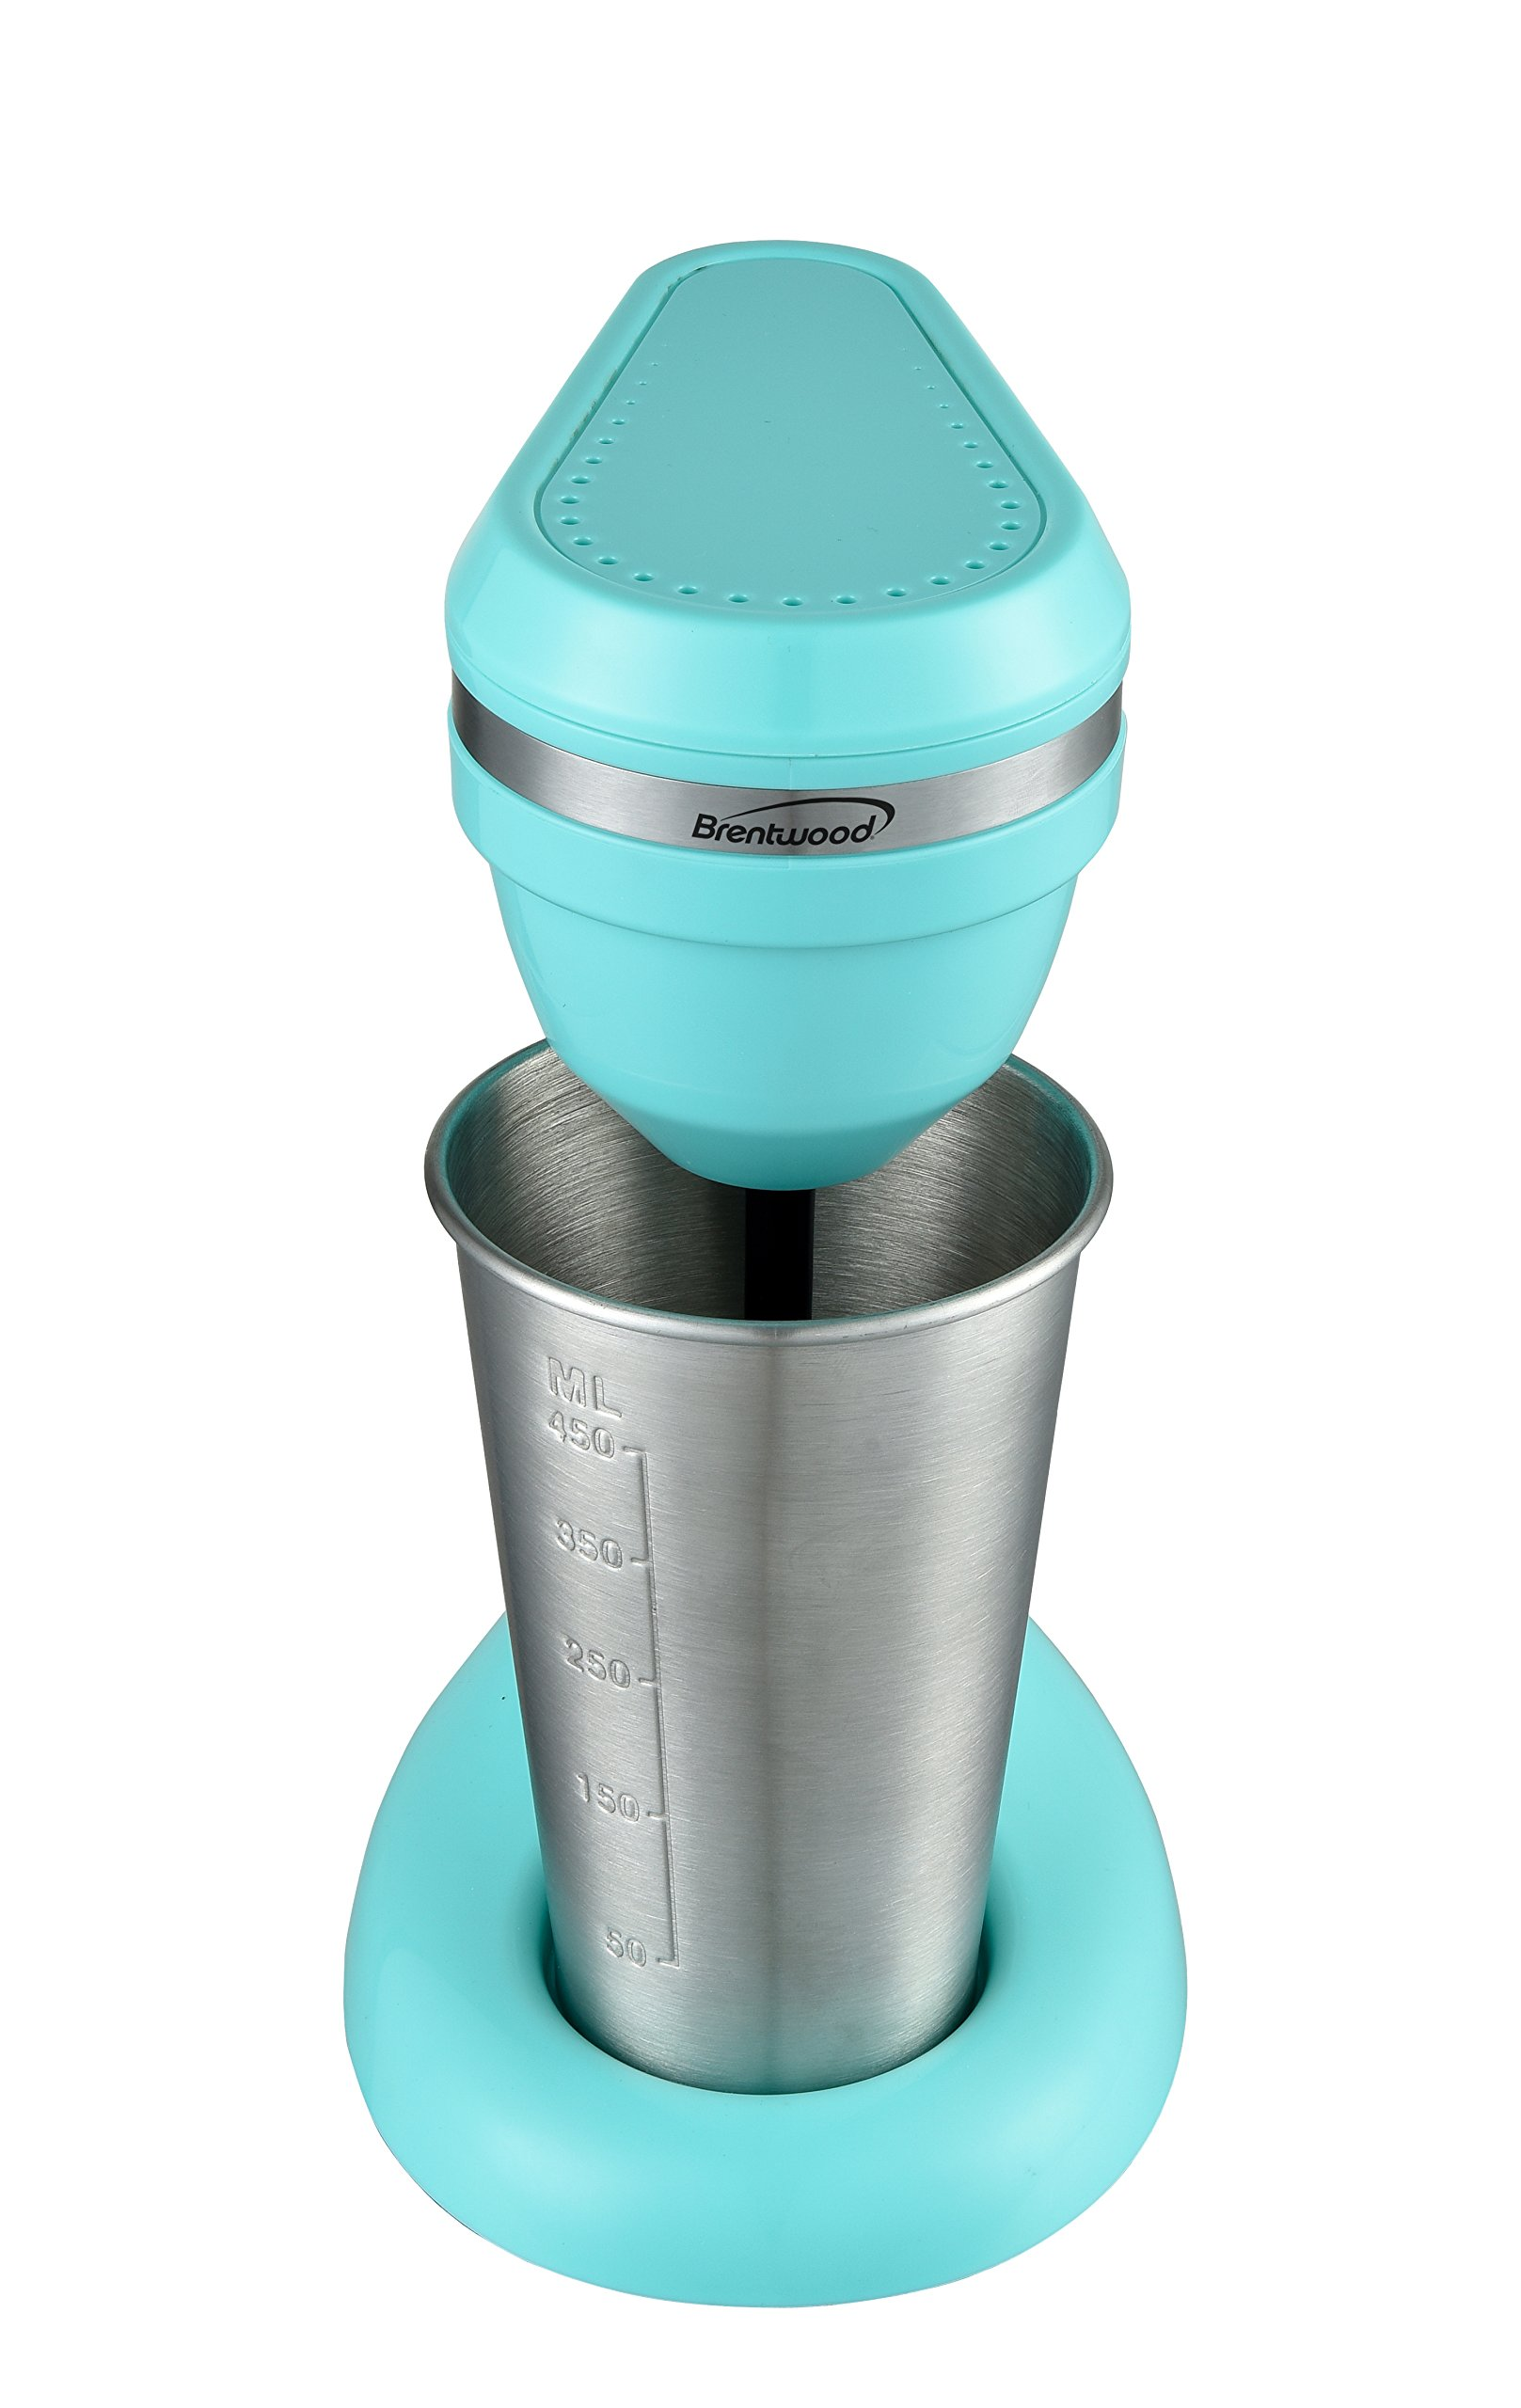 Brentwood SM-1200B Milkshake Maker, Small, Turquoise by Brentwood (Image #6)